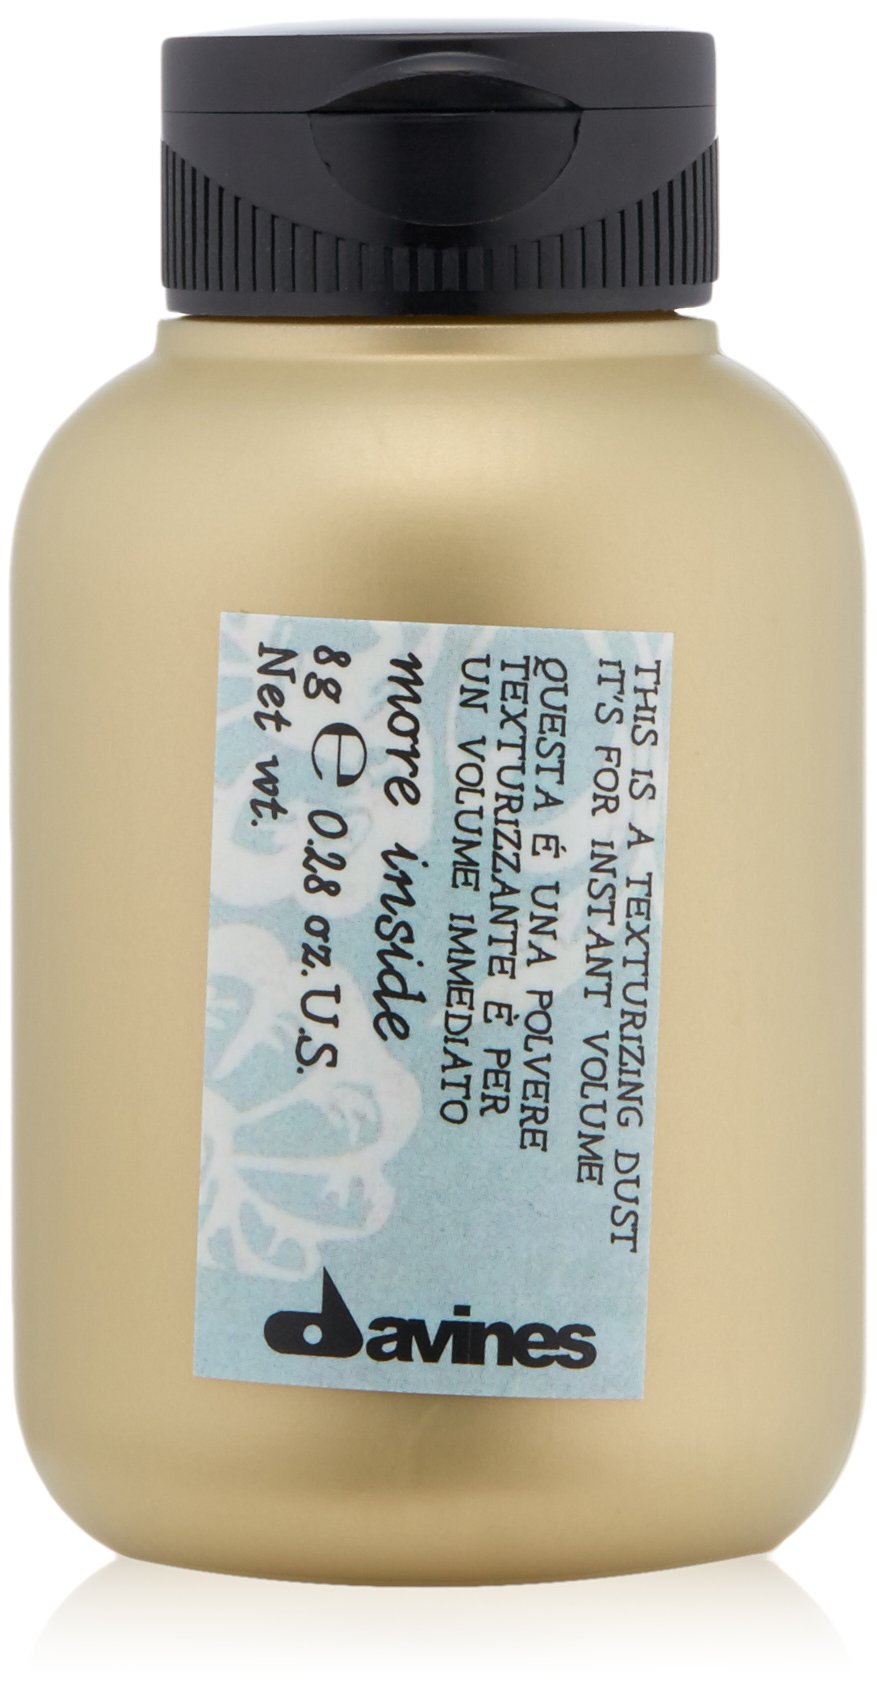 Davines This is a Texturizing Dust, 8 g. by Davines